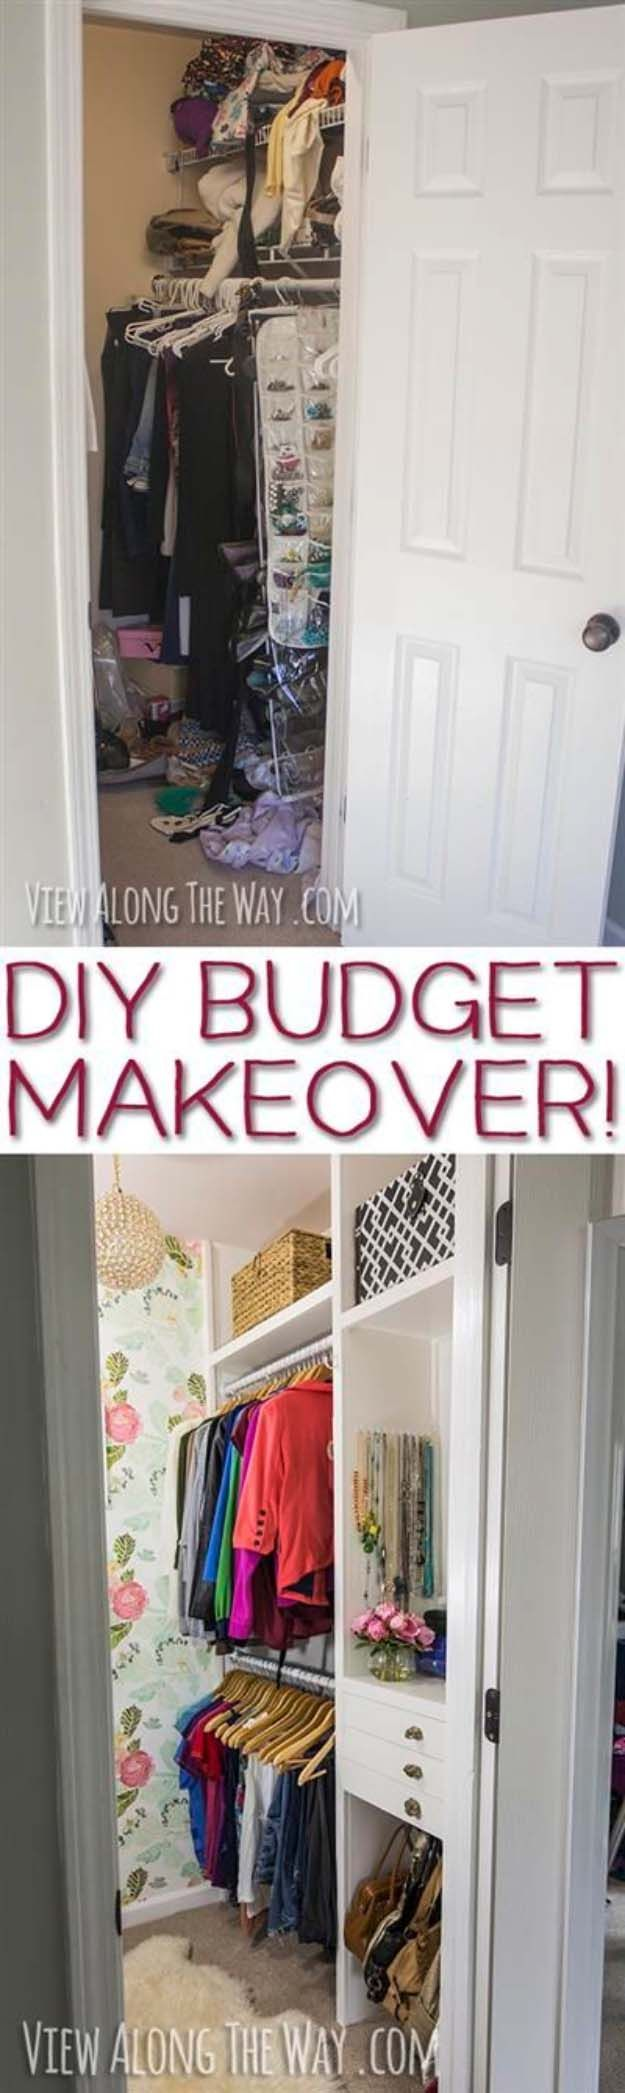 diy closet organizer. 31 Closet Organizing Hacks And Organization Ideas Diy Organizer